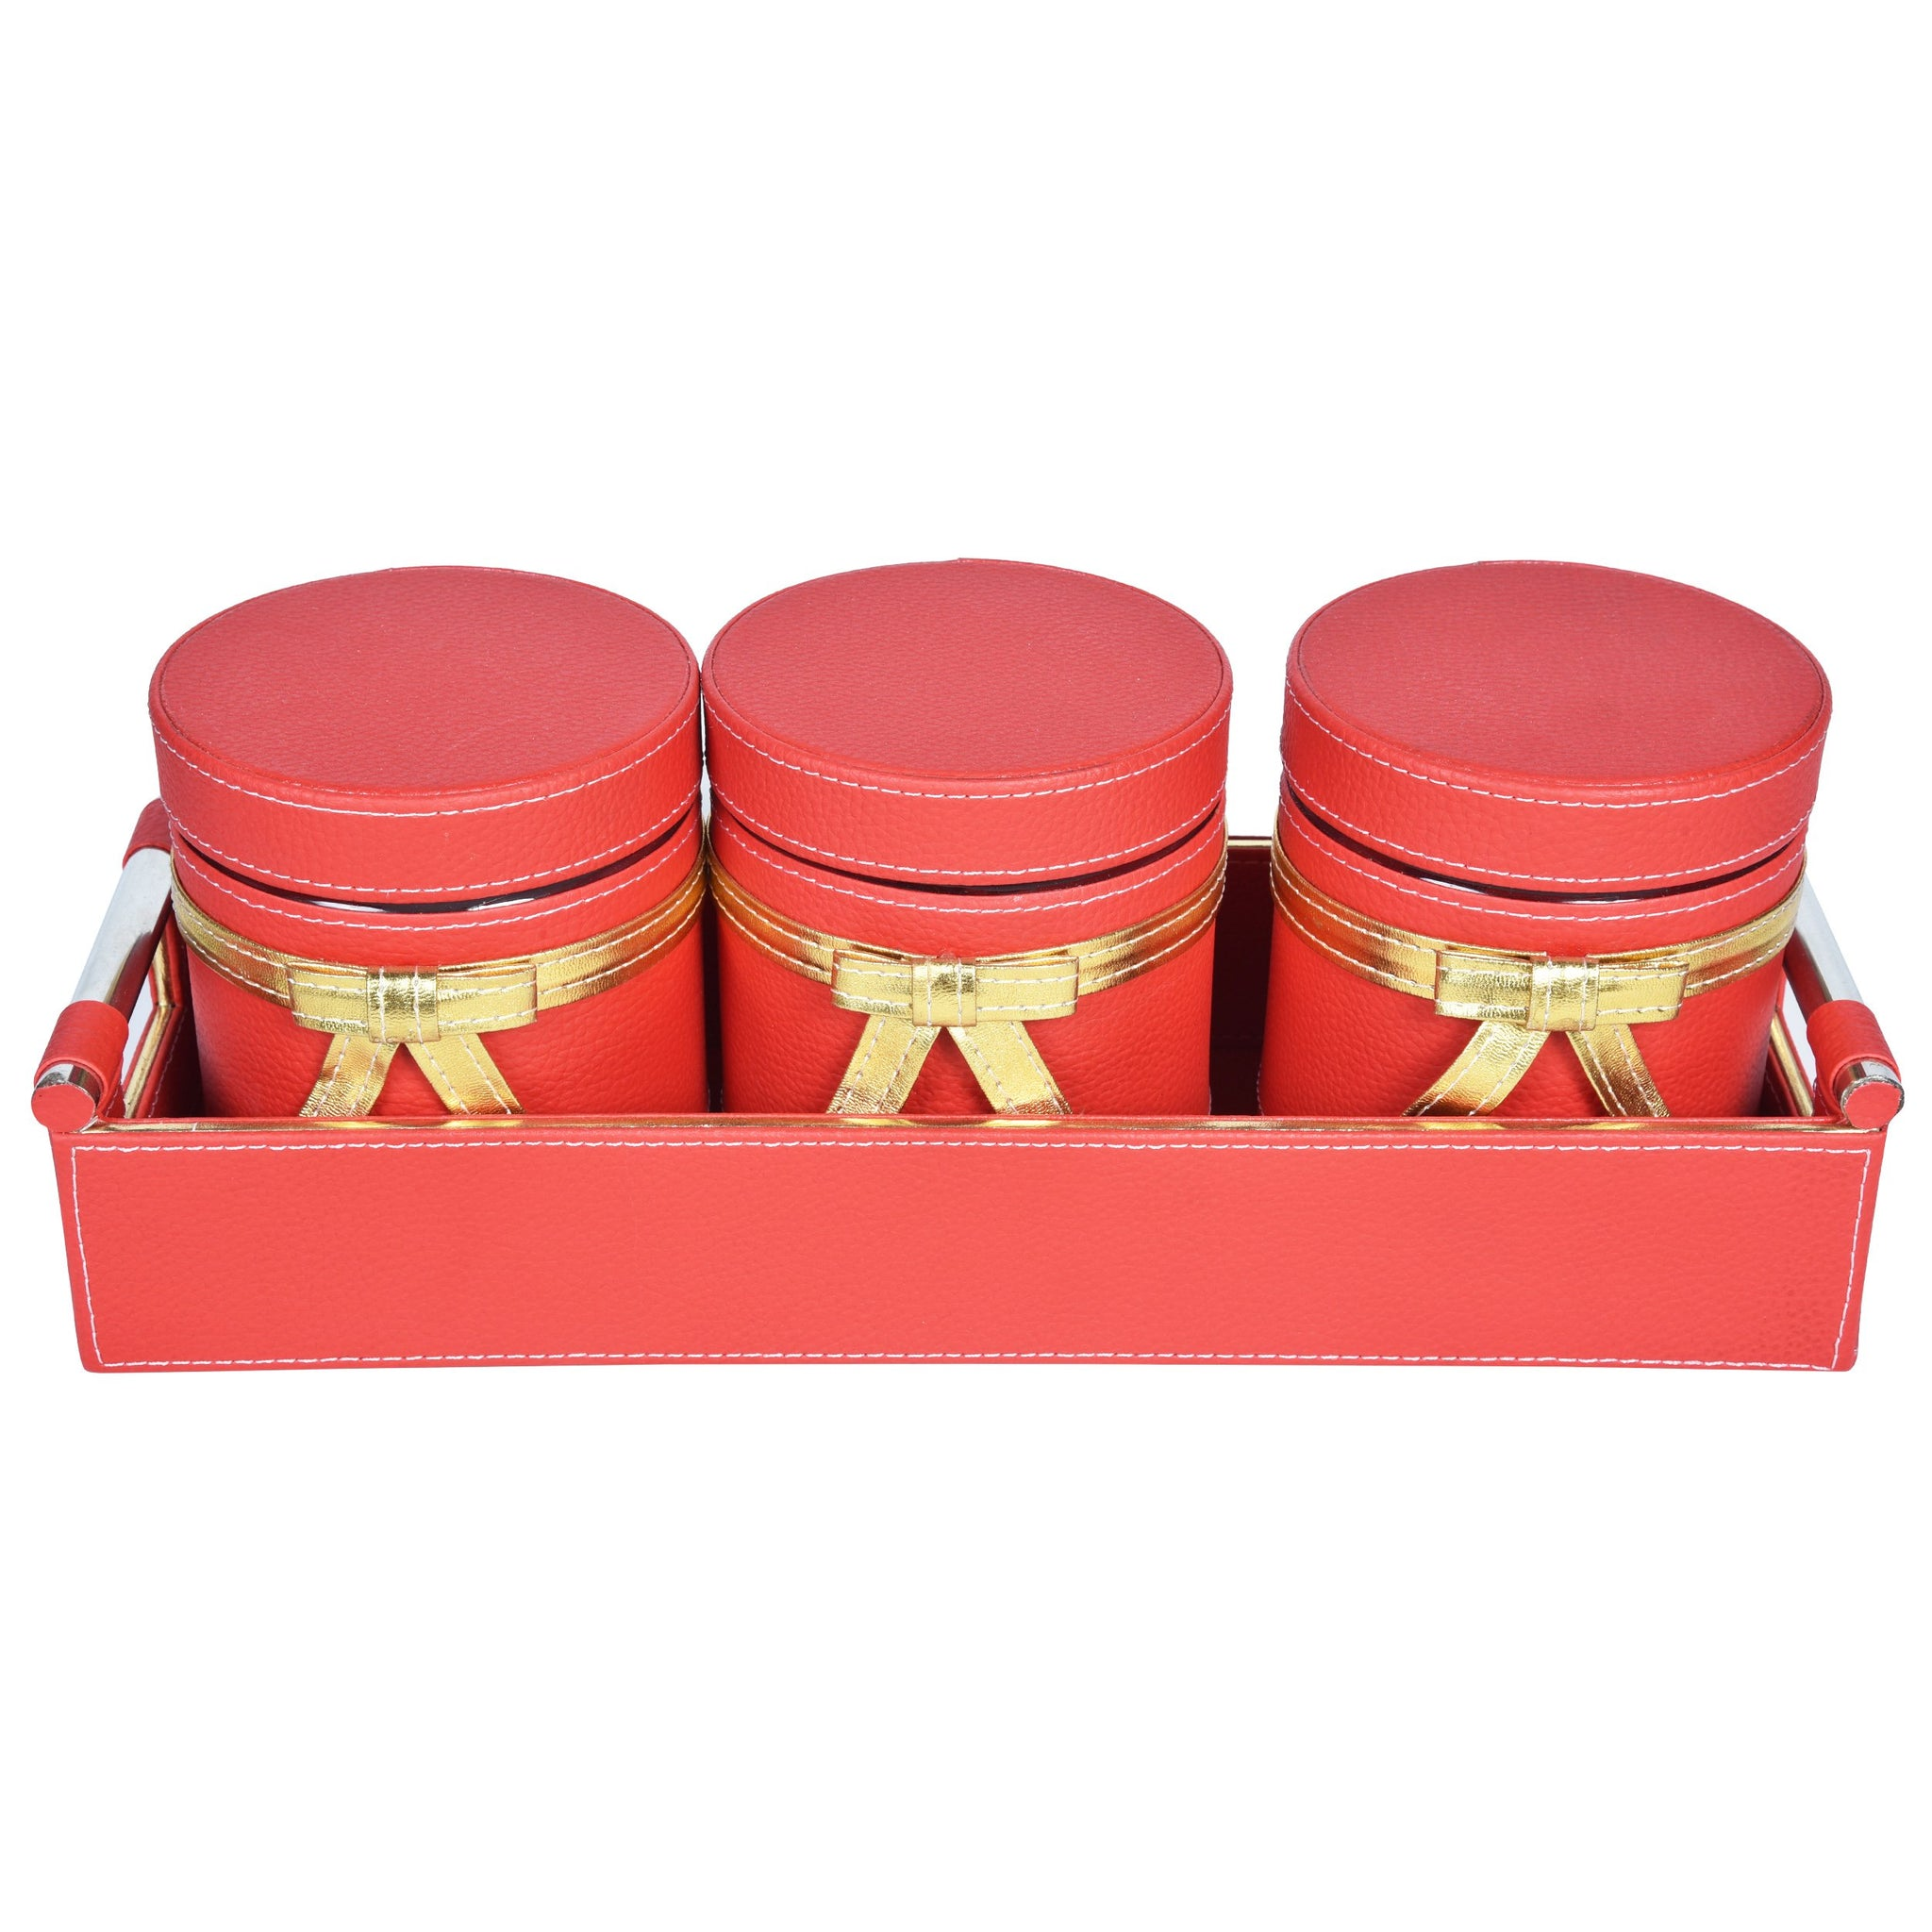 Nestasia Jar & Tray set of 3 - Rectangle tray with handle - Red Gold Combination - For Gifts Home Office - Three PU Leatherite covered glass canister with bow